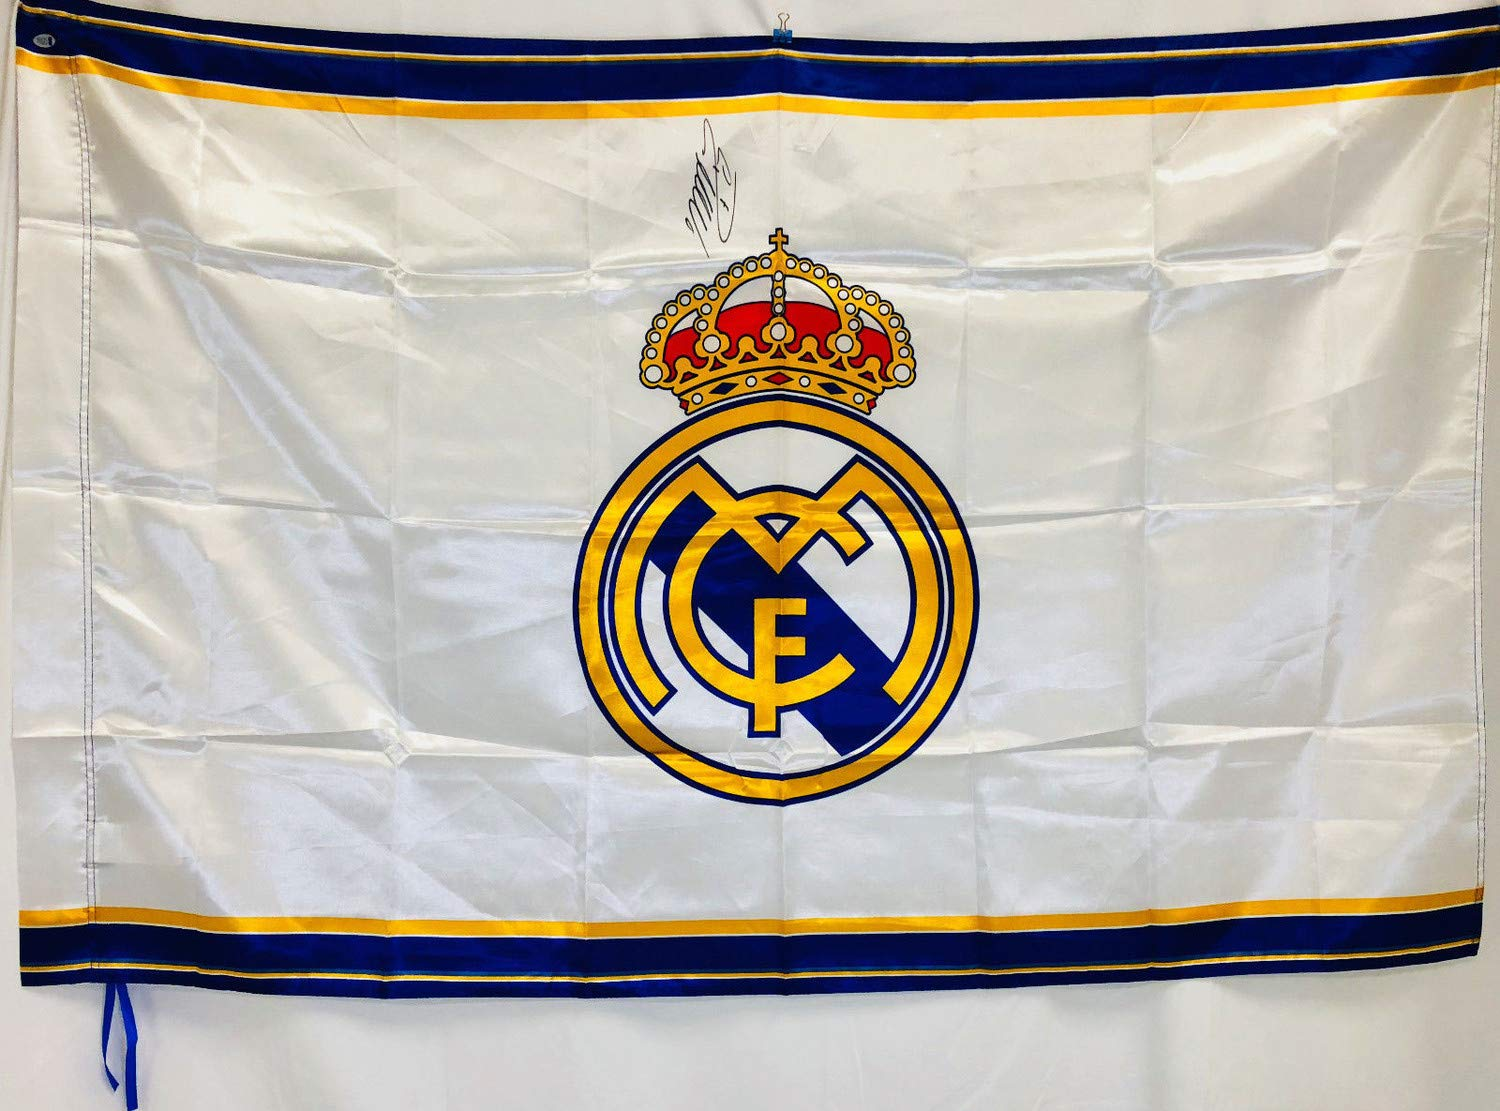 Cristiano Ronaldo Autographed Signed Memorabilia Real Madrid Soccer Flag Banner Auto Beckett Authentic